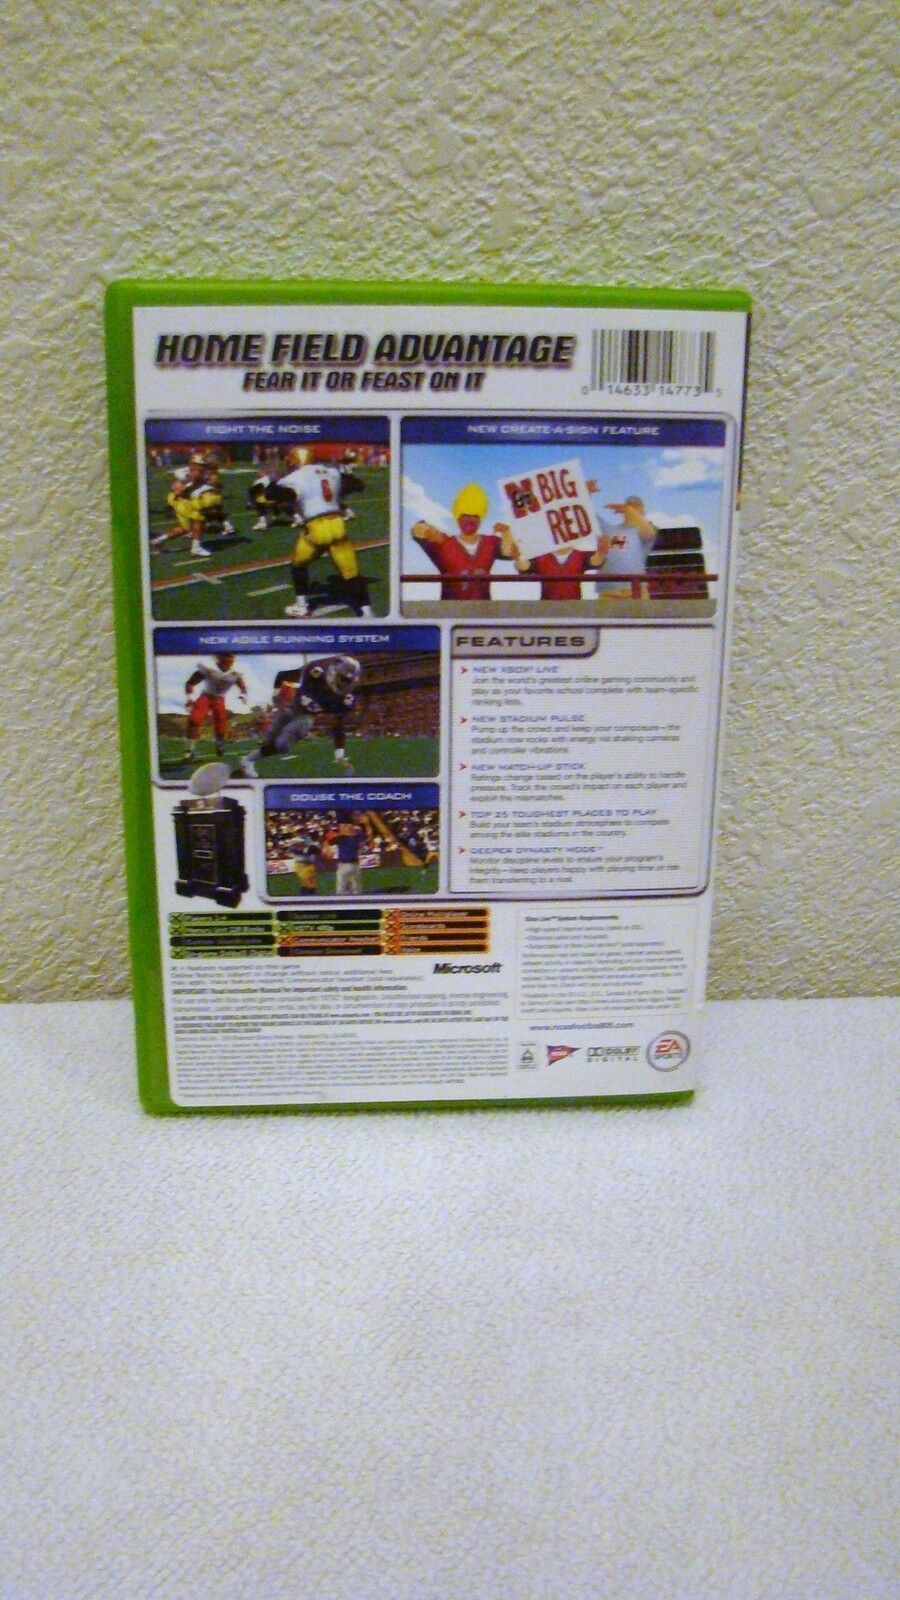 2004 XBox EA Sports NCAA Football 2005 Rated E for Everyone Video Game